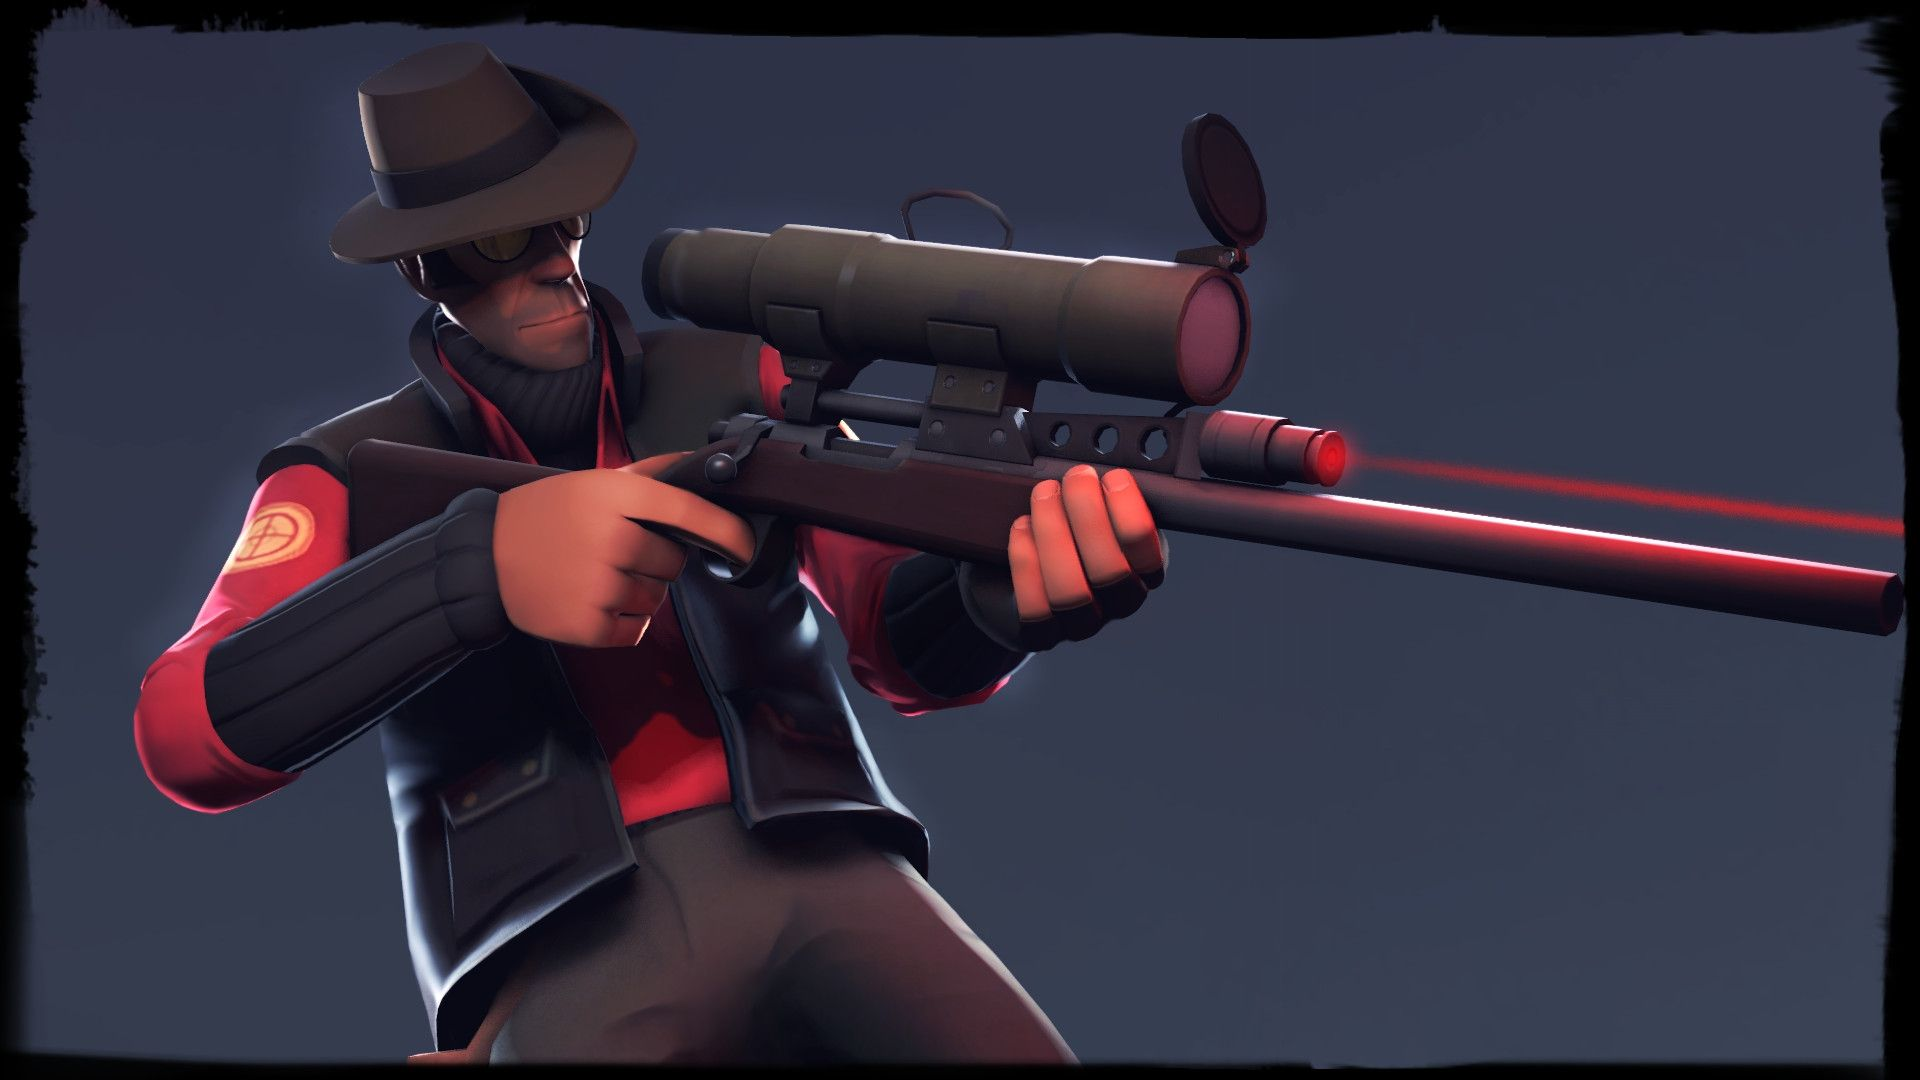 Steam Workshop::Team Fortress 2 - Live TF2 Items